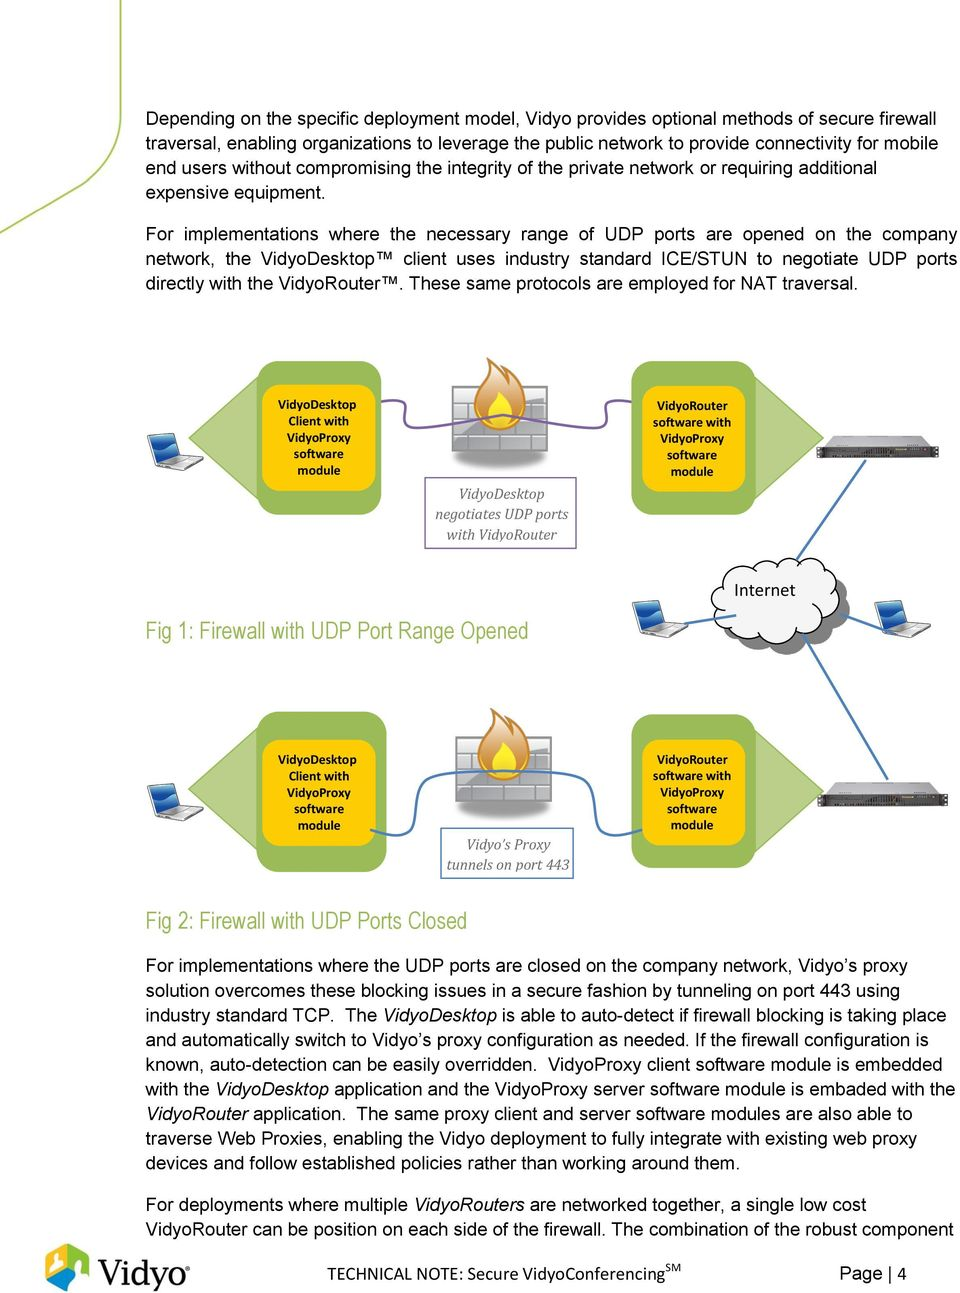 For implementations where the necessary range of UDP ports are opened on the company network, the VidyoDesktop client uses industry standard ICE/STUN to negotiate UDP ports directly with the